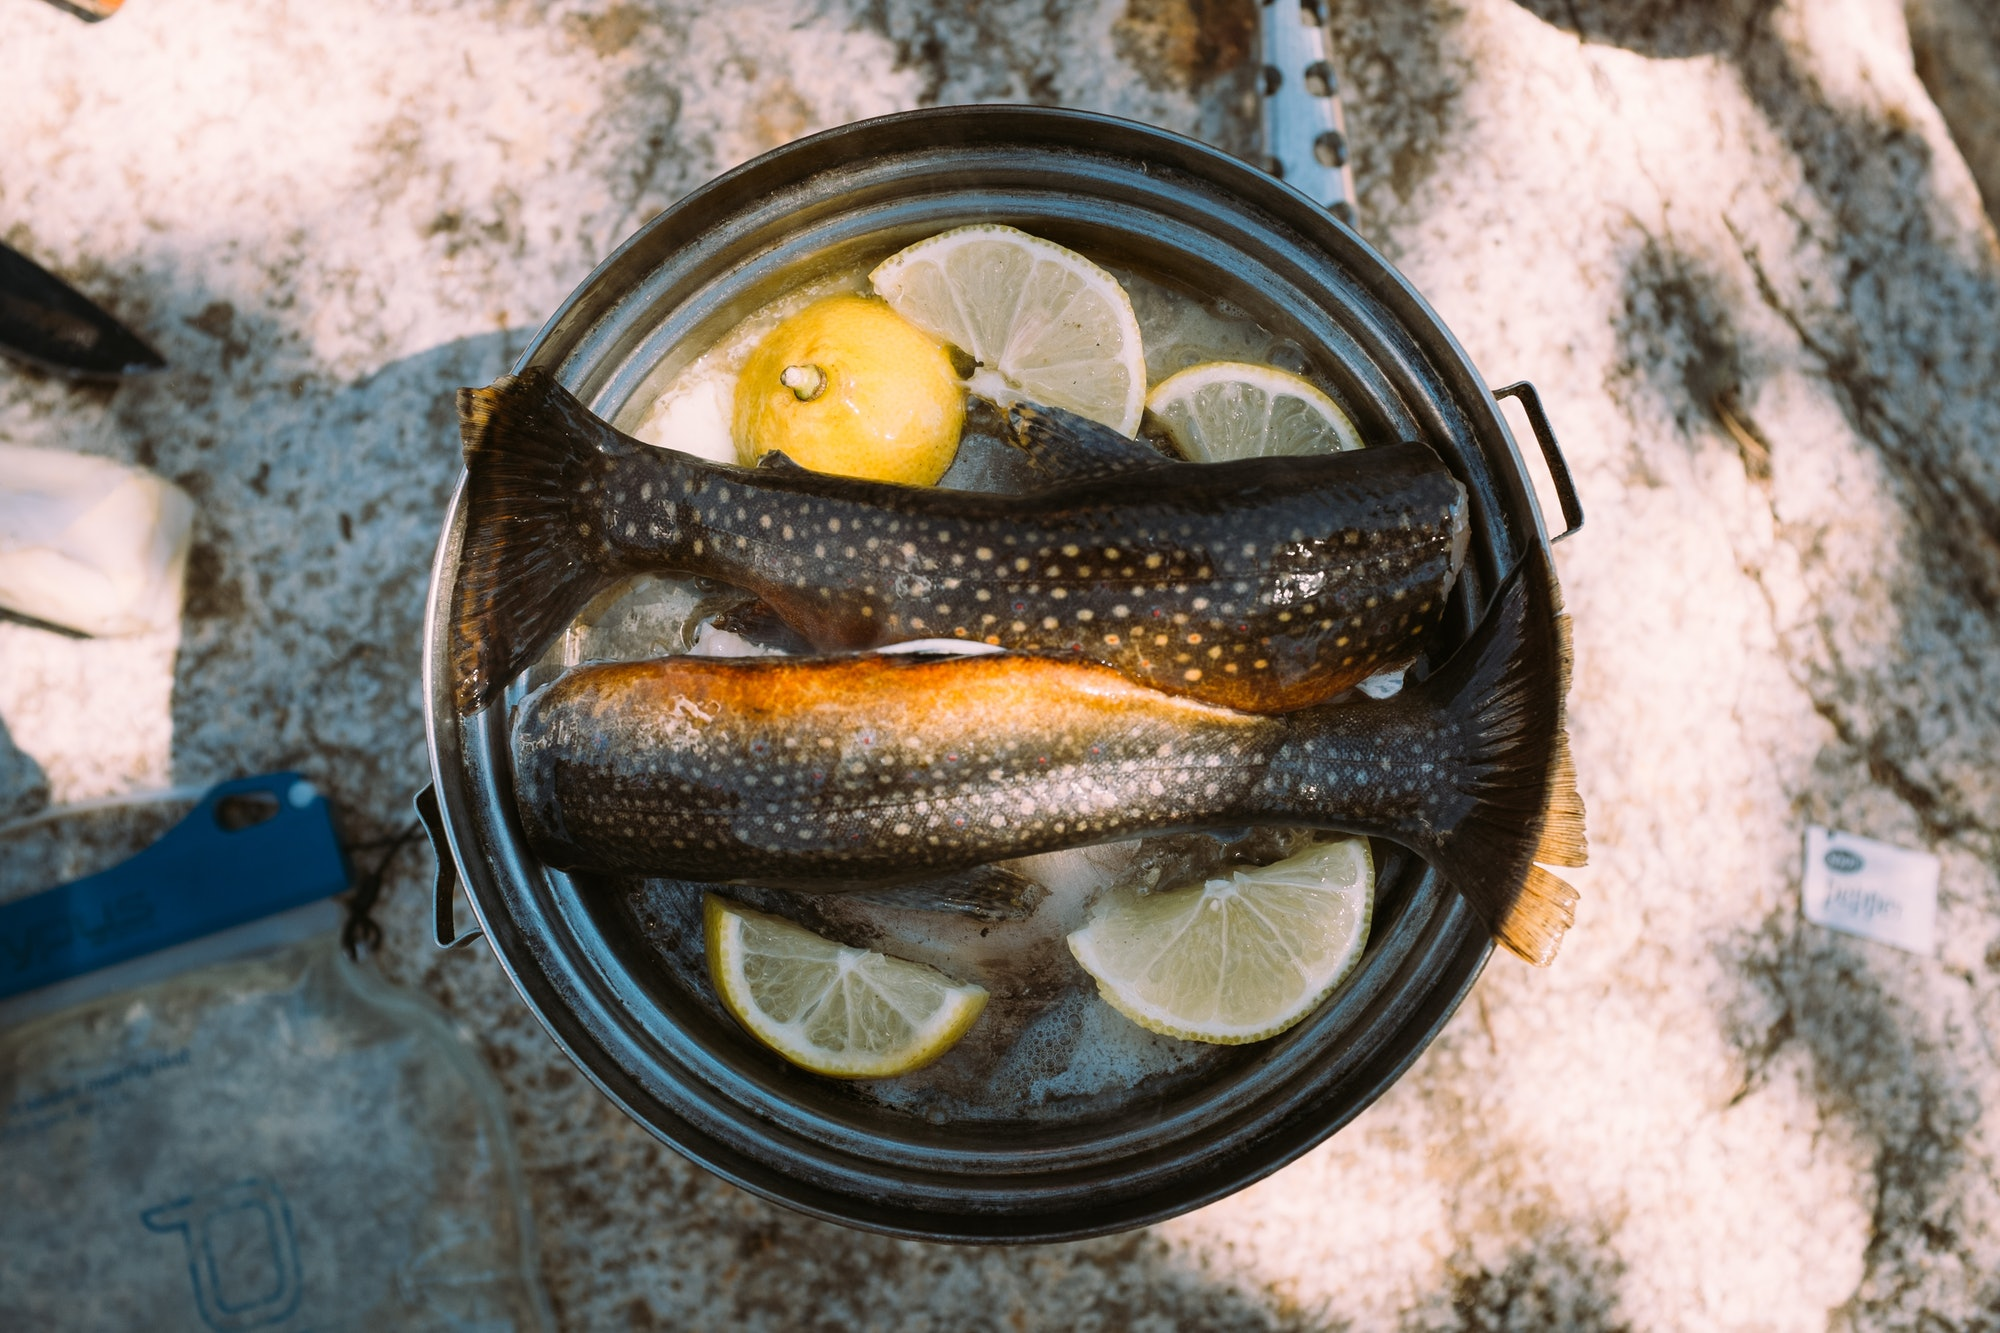 Inland fish caught for subsistence rather than for sale are hugely underreported, the new study finds.